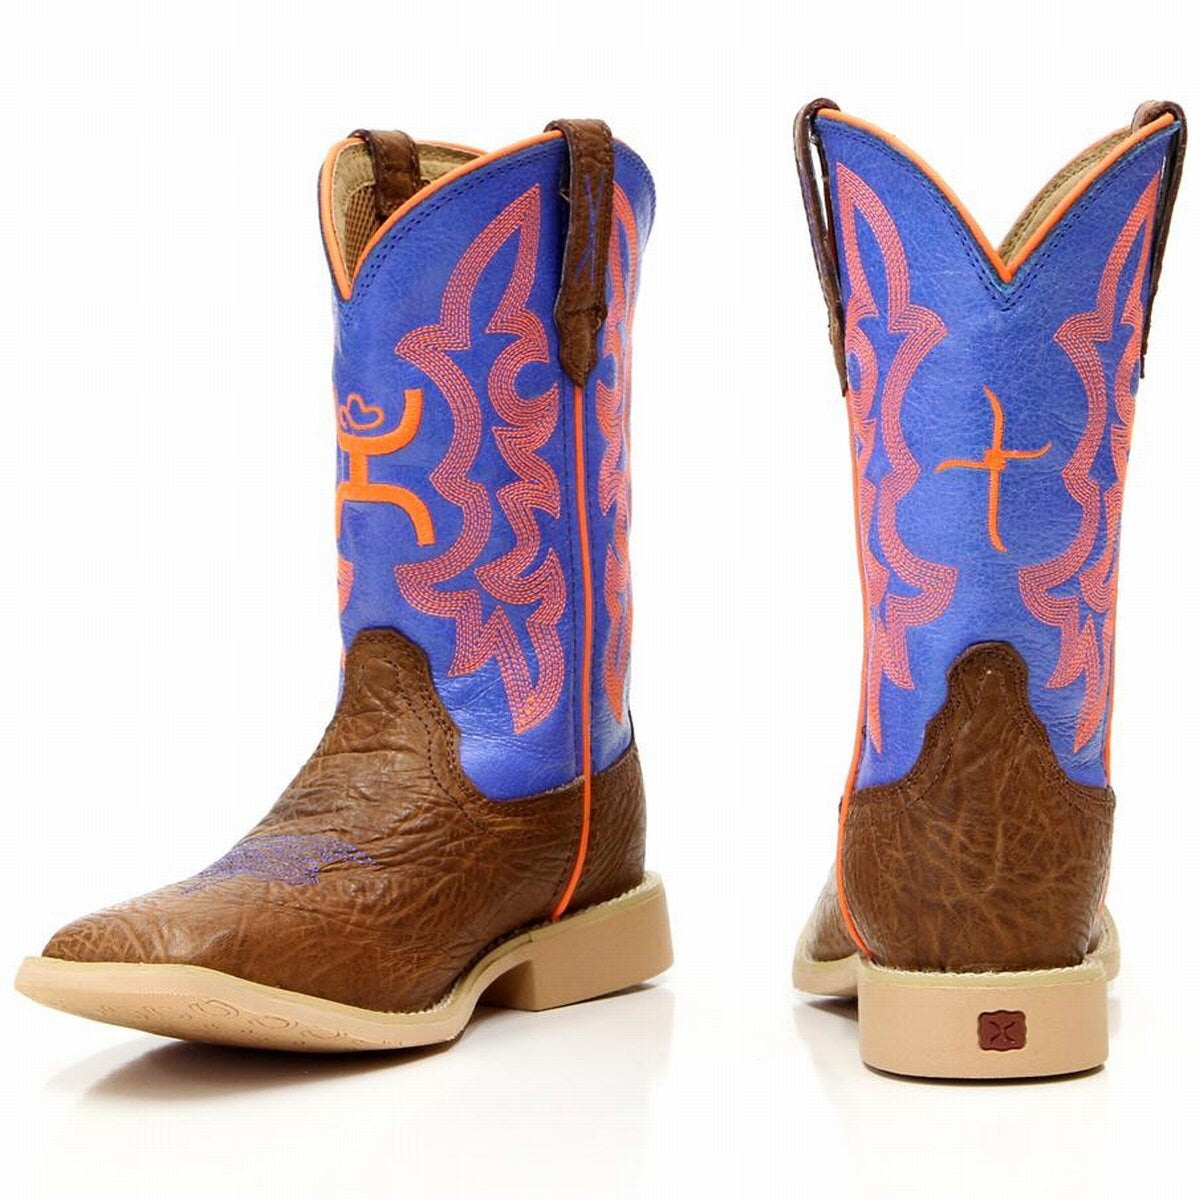 Youth Cog Bull Blue Boots YHY0001